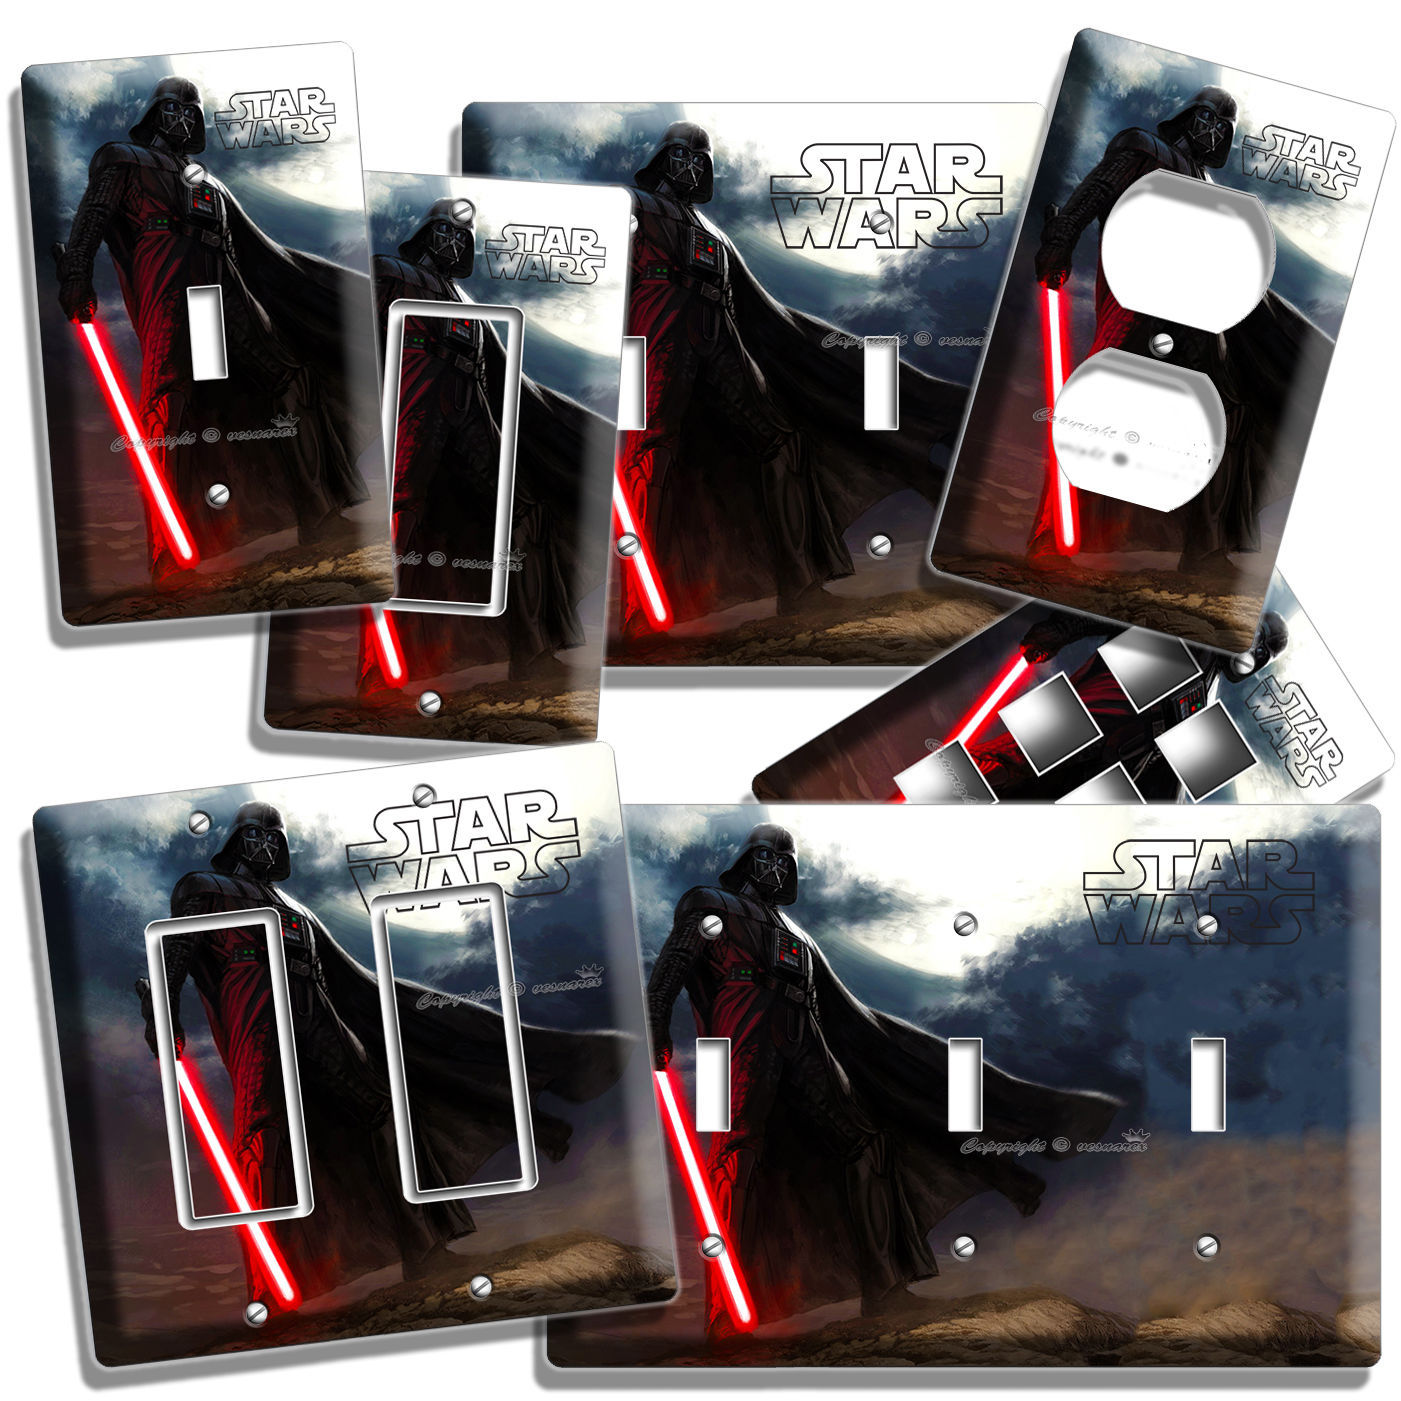 DARTH VADER RED SWORD STAR WARS DARK FORCE LIGHT SWITCH OUTLET WALL PLATE COVER